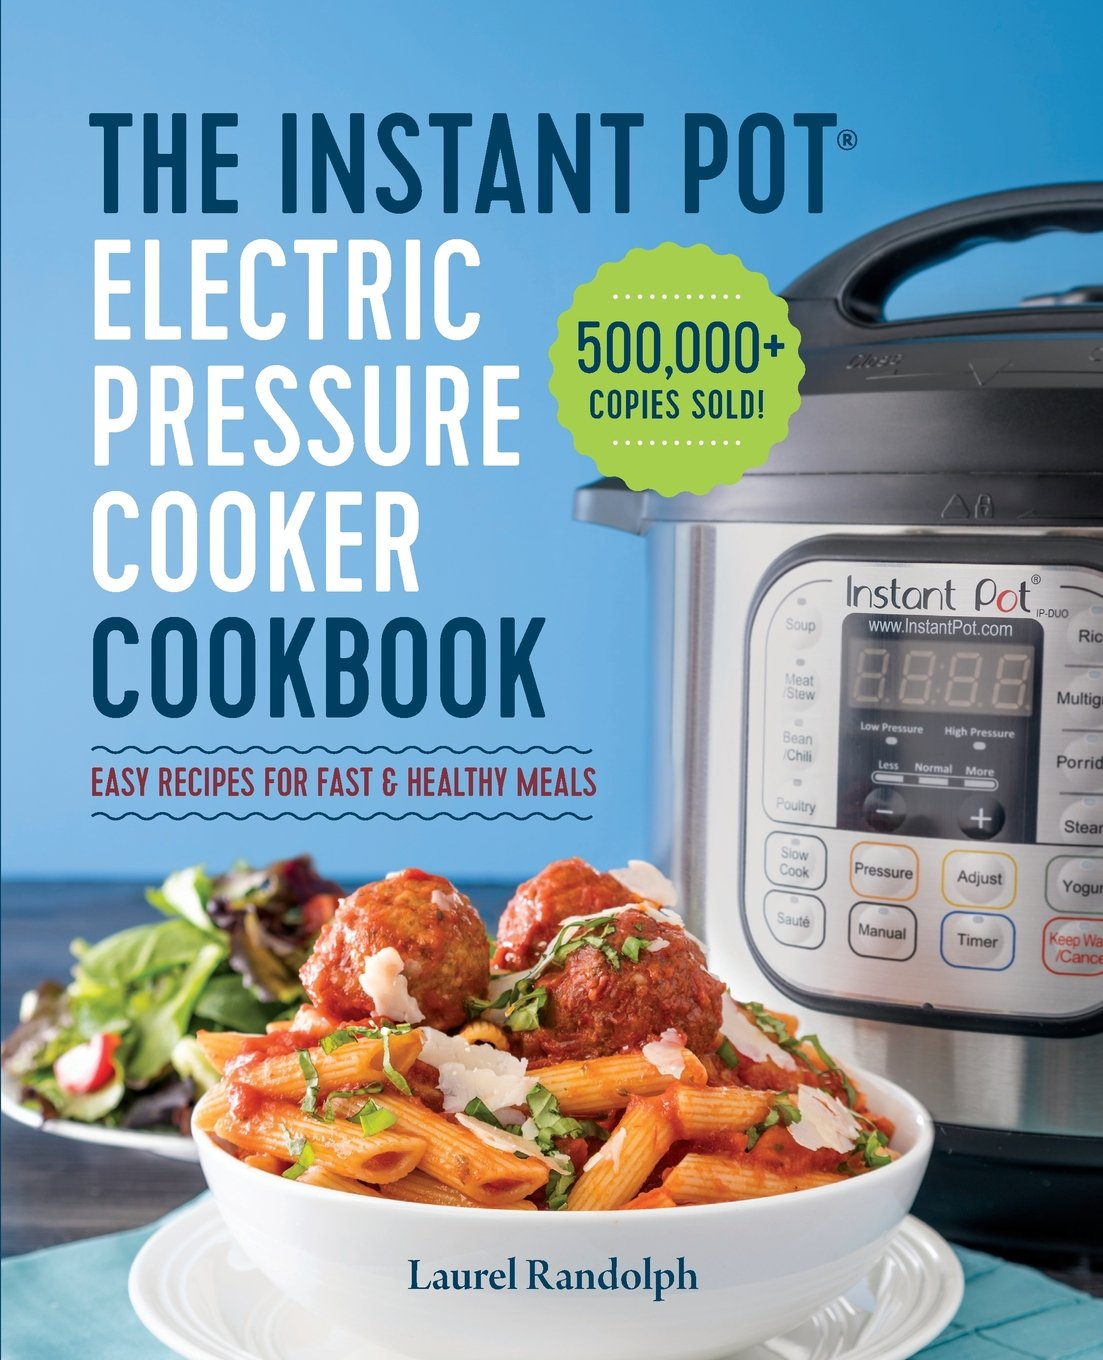 The Instant Pot Electric Pressure Cooker Cookbook: Easy Recipes for ...